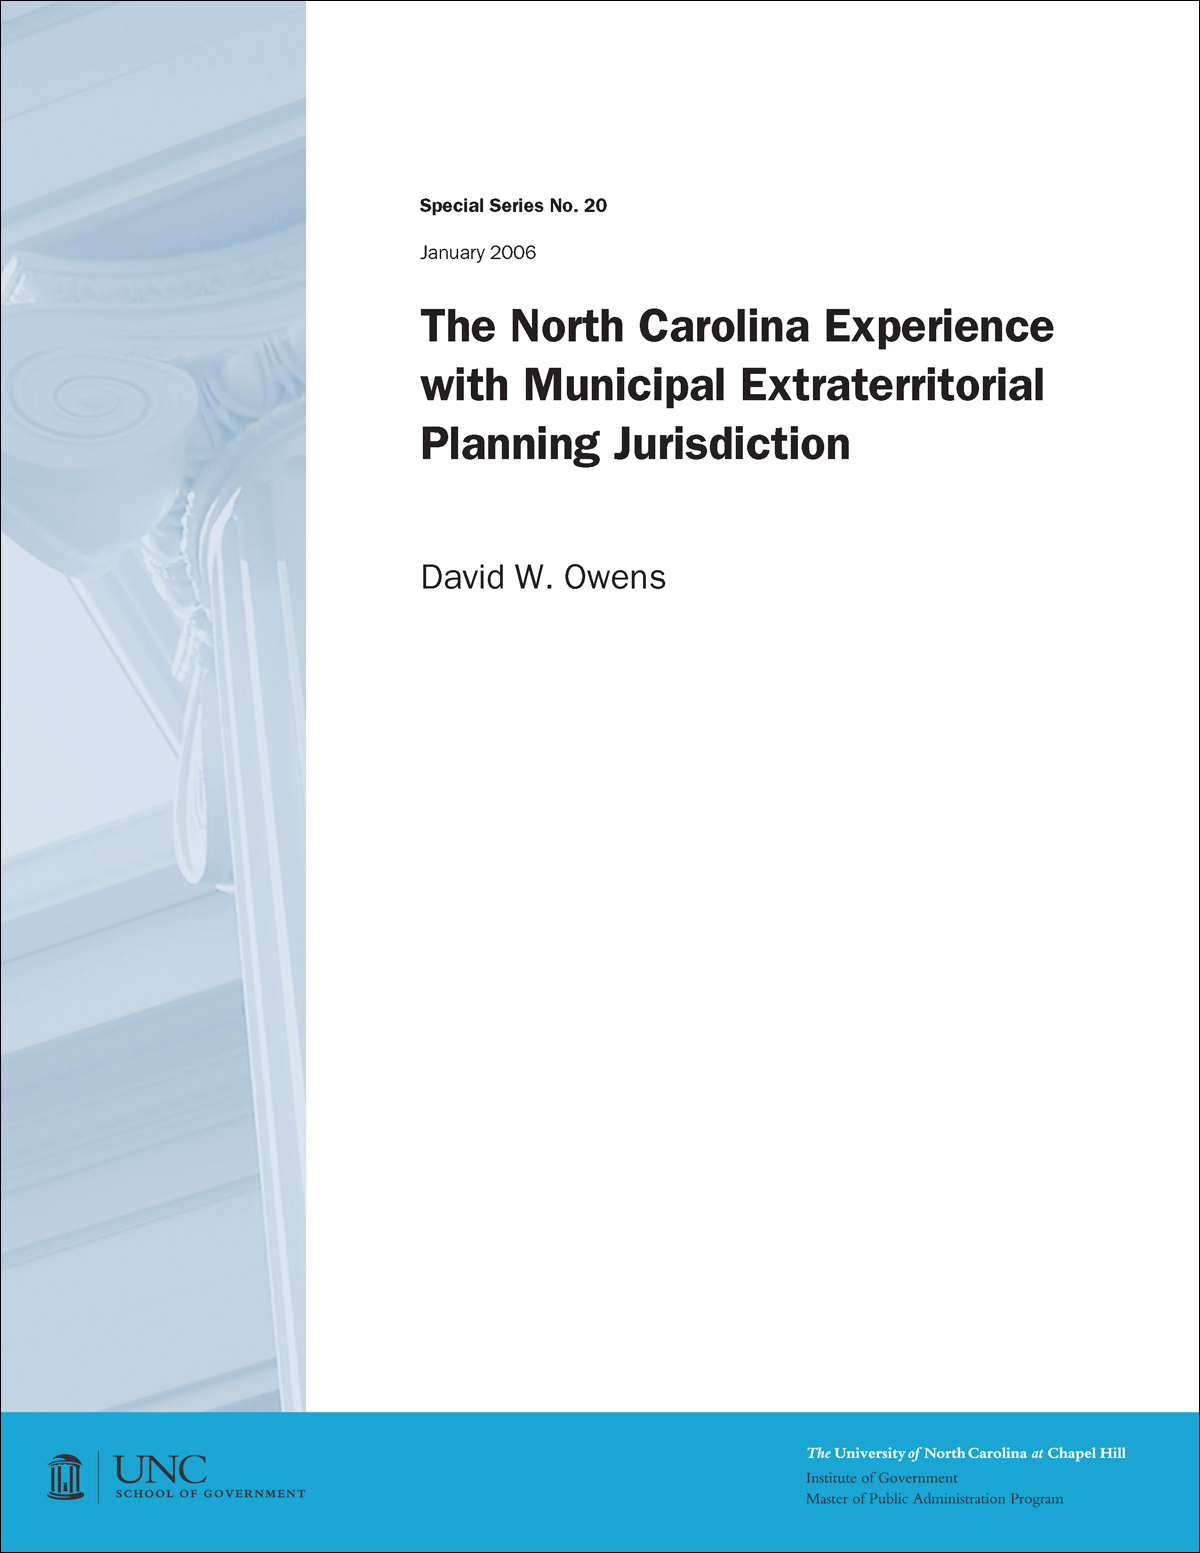 Cover image for North Carolina Experience with Municipal Extraterritorial Planning Jurisdiction